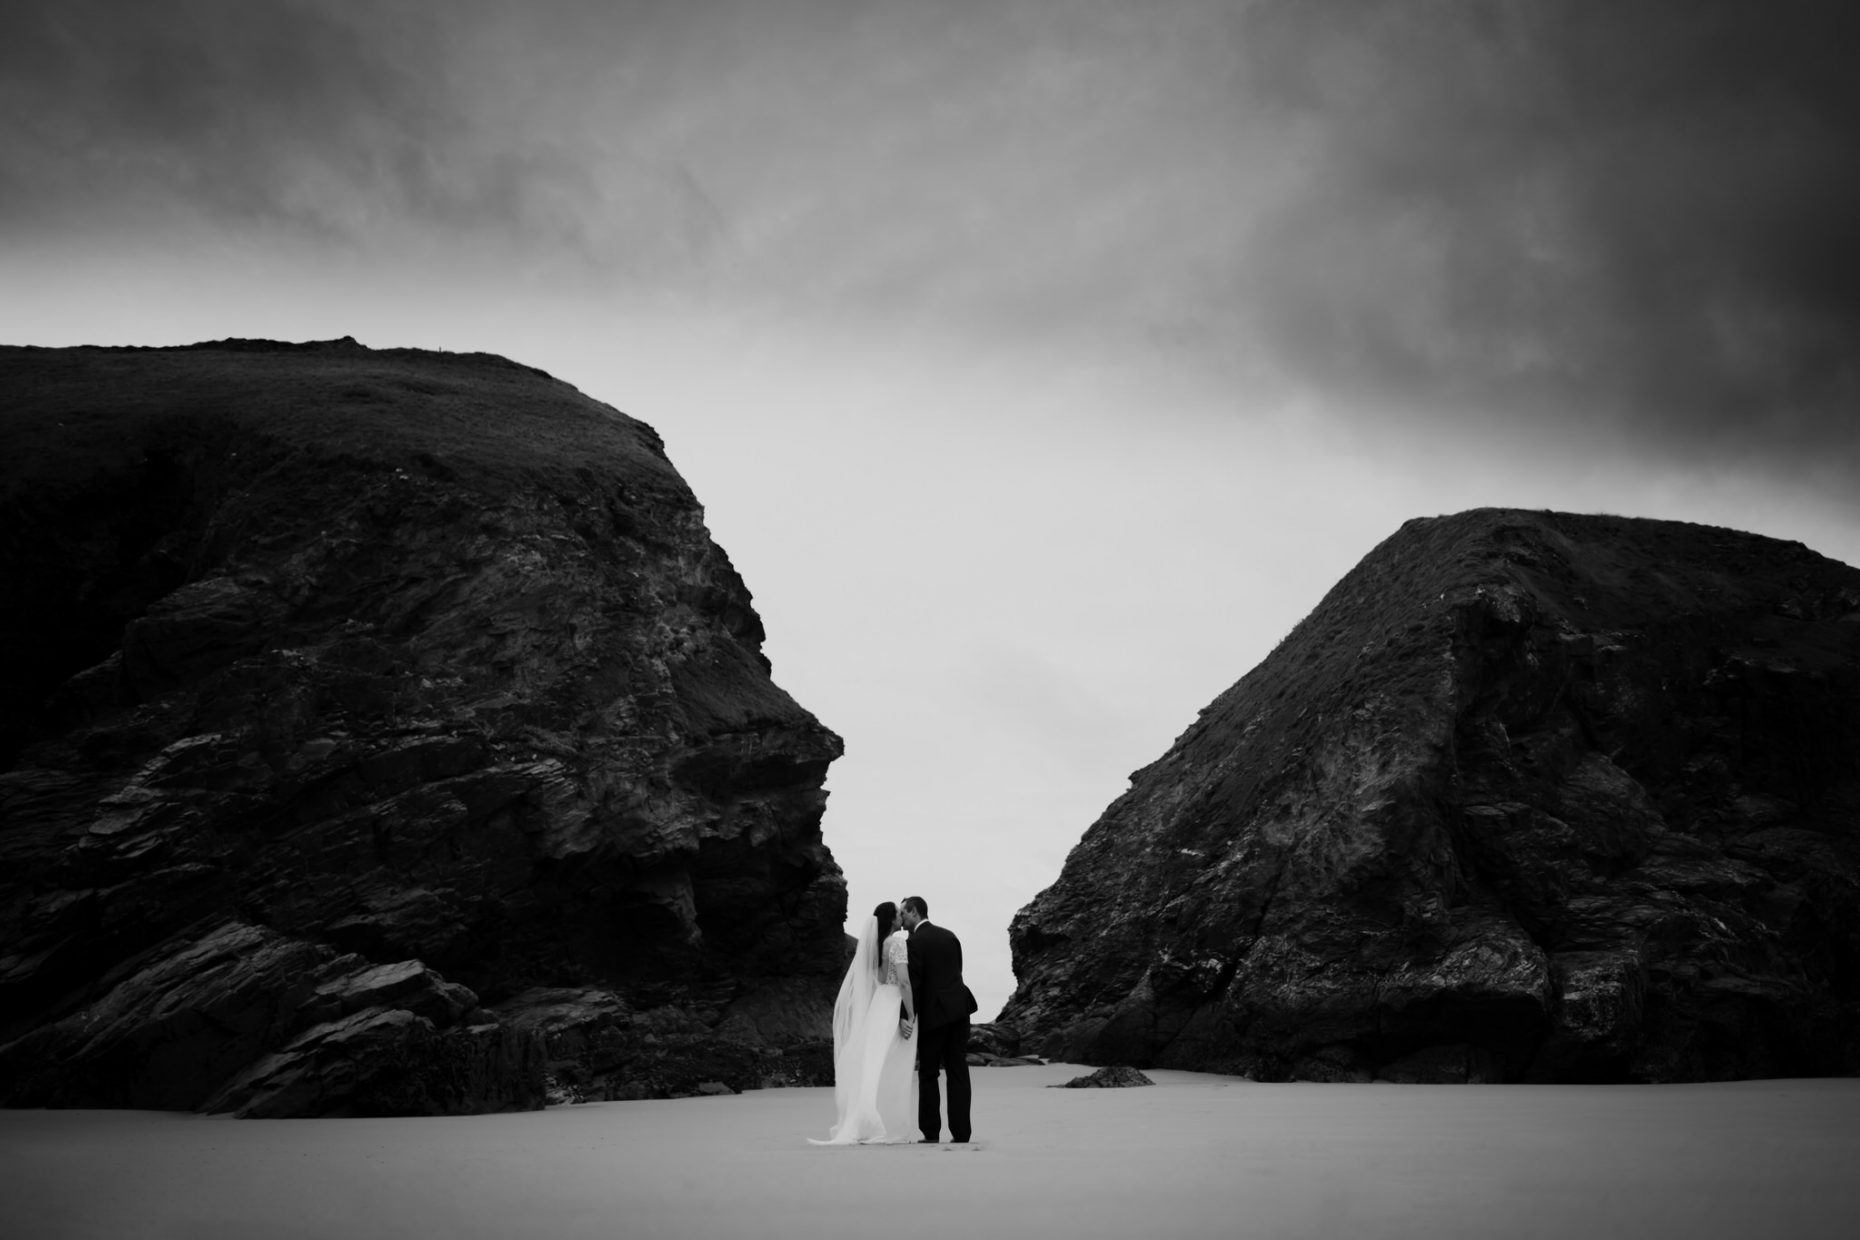 bride and groom kiss in a dramtic landscape, white sandy beach with huge black rocks frame them with big dark clouds above them